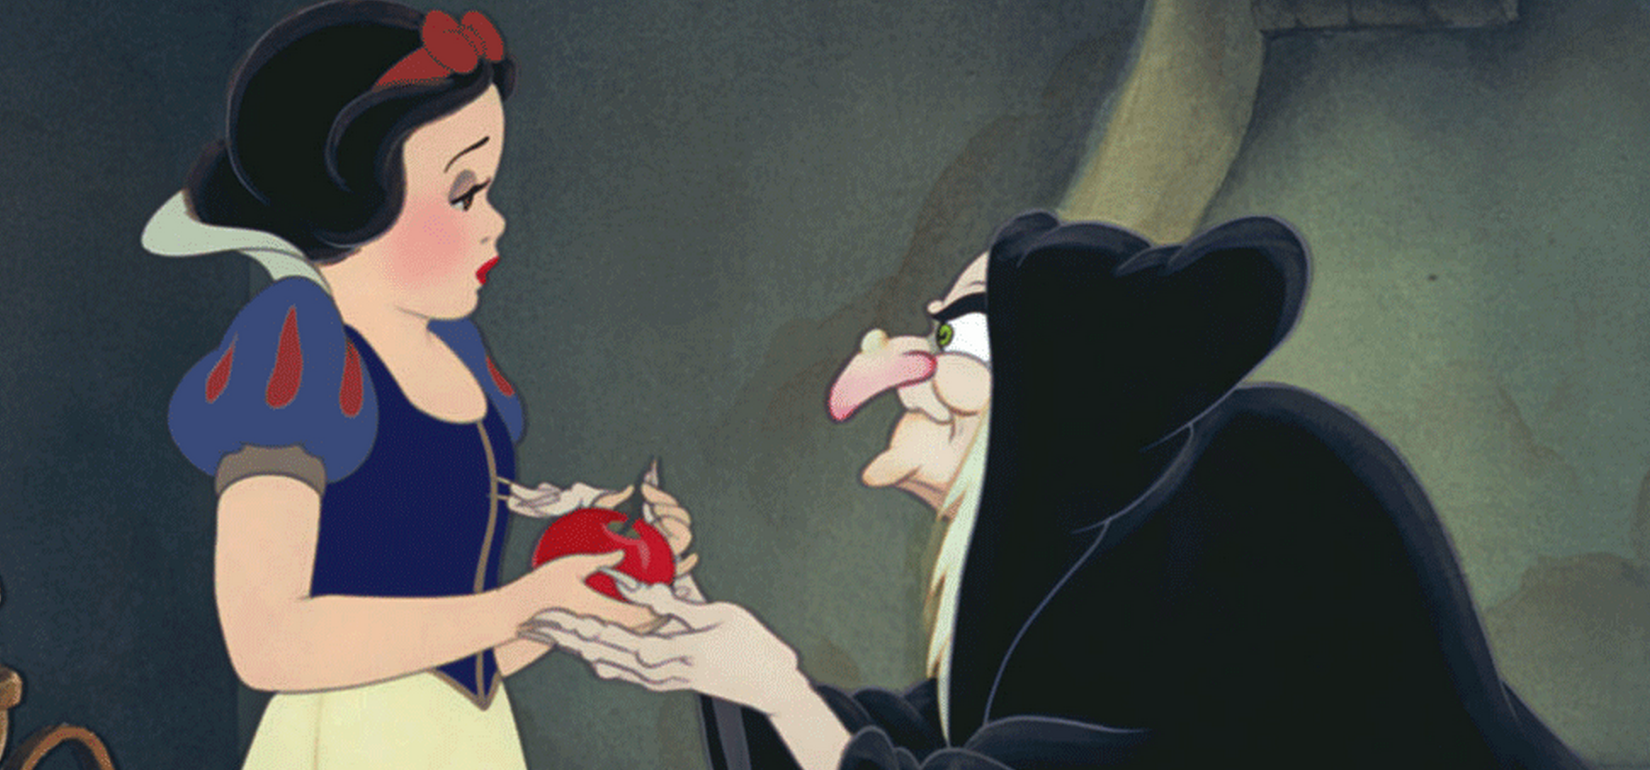 the crone in Snow White